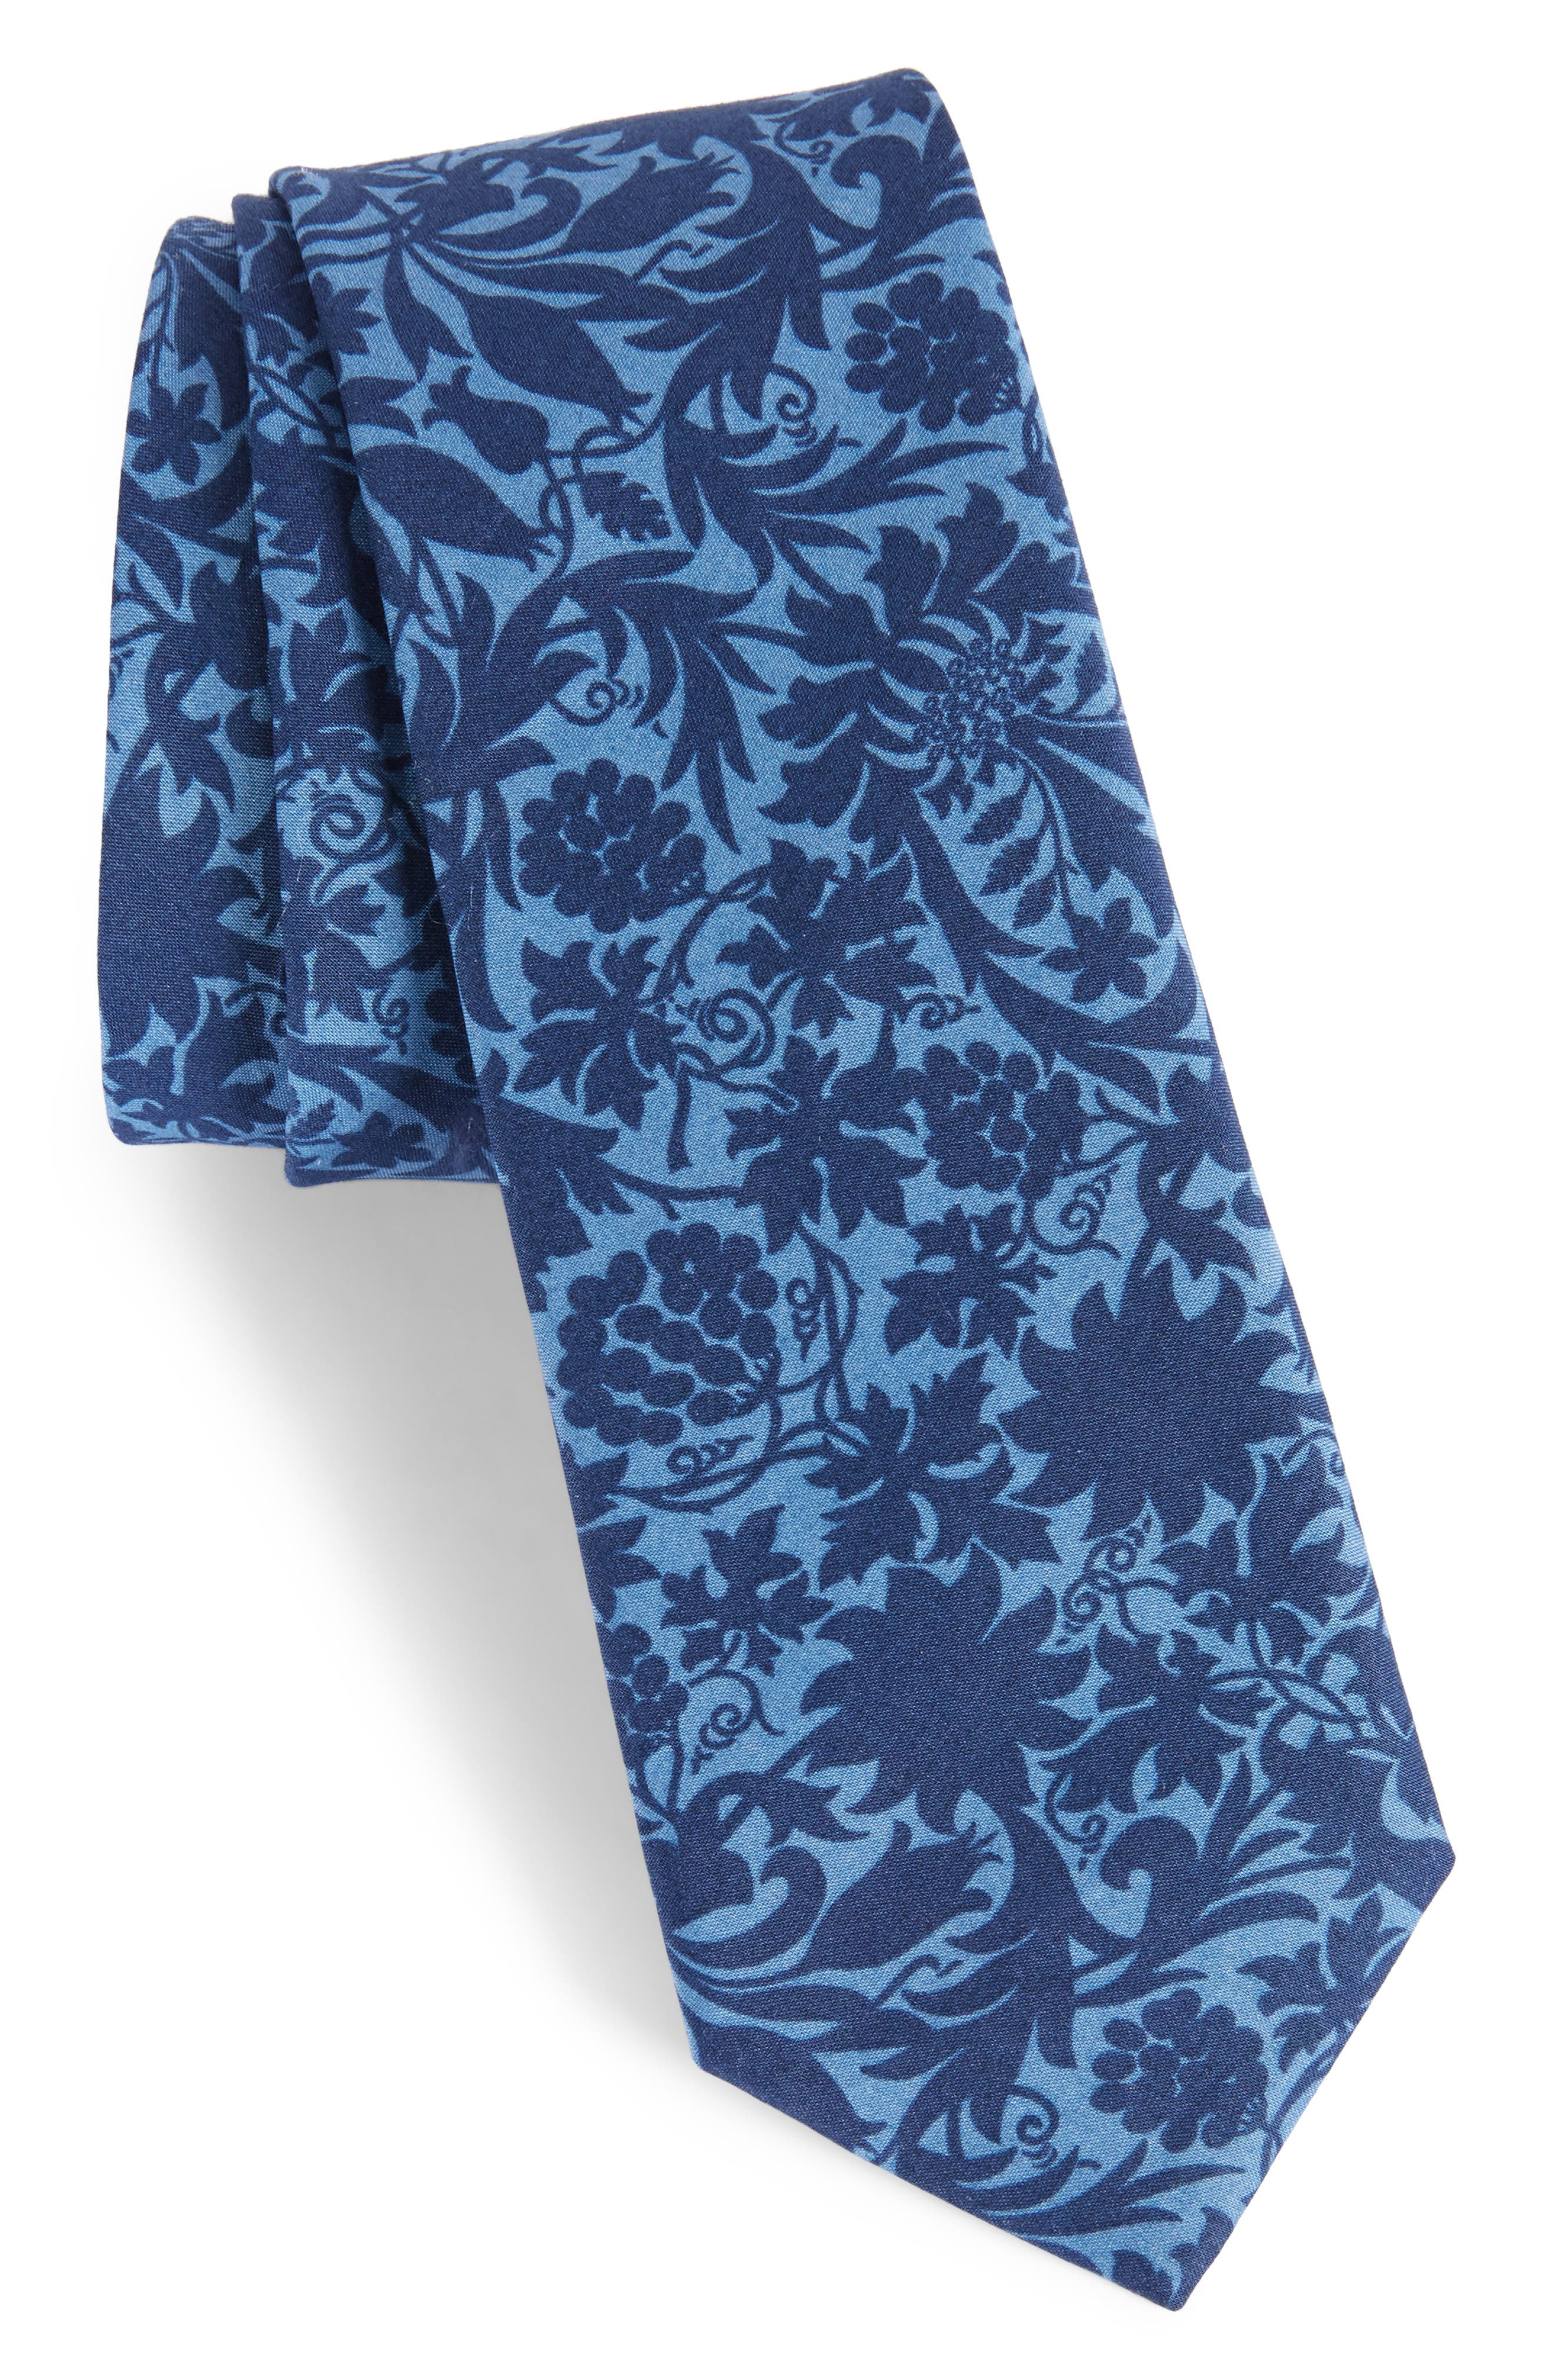 Main Image - Paul Smith Floral Cotton Skinny Tie